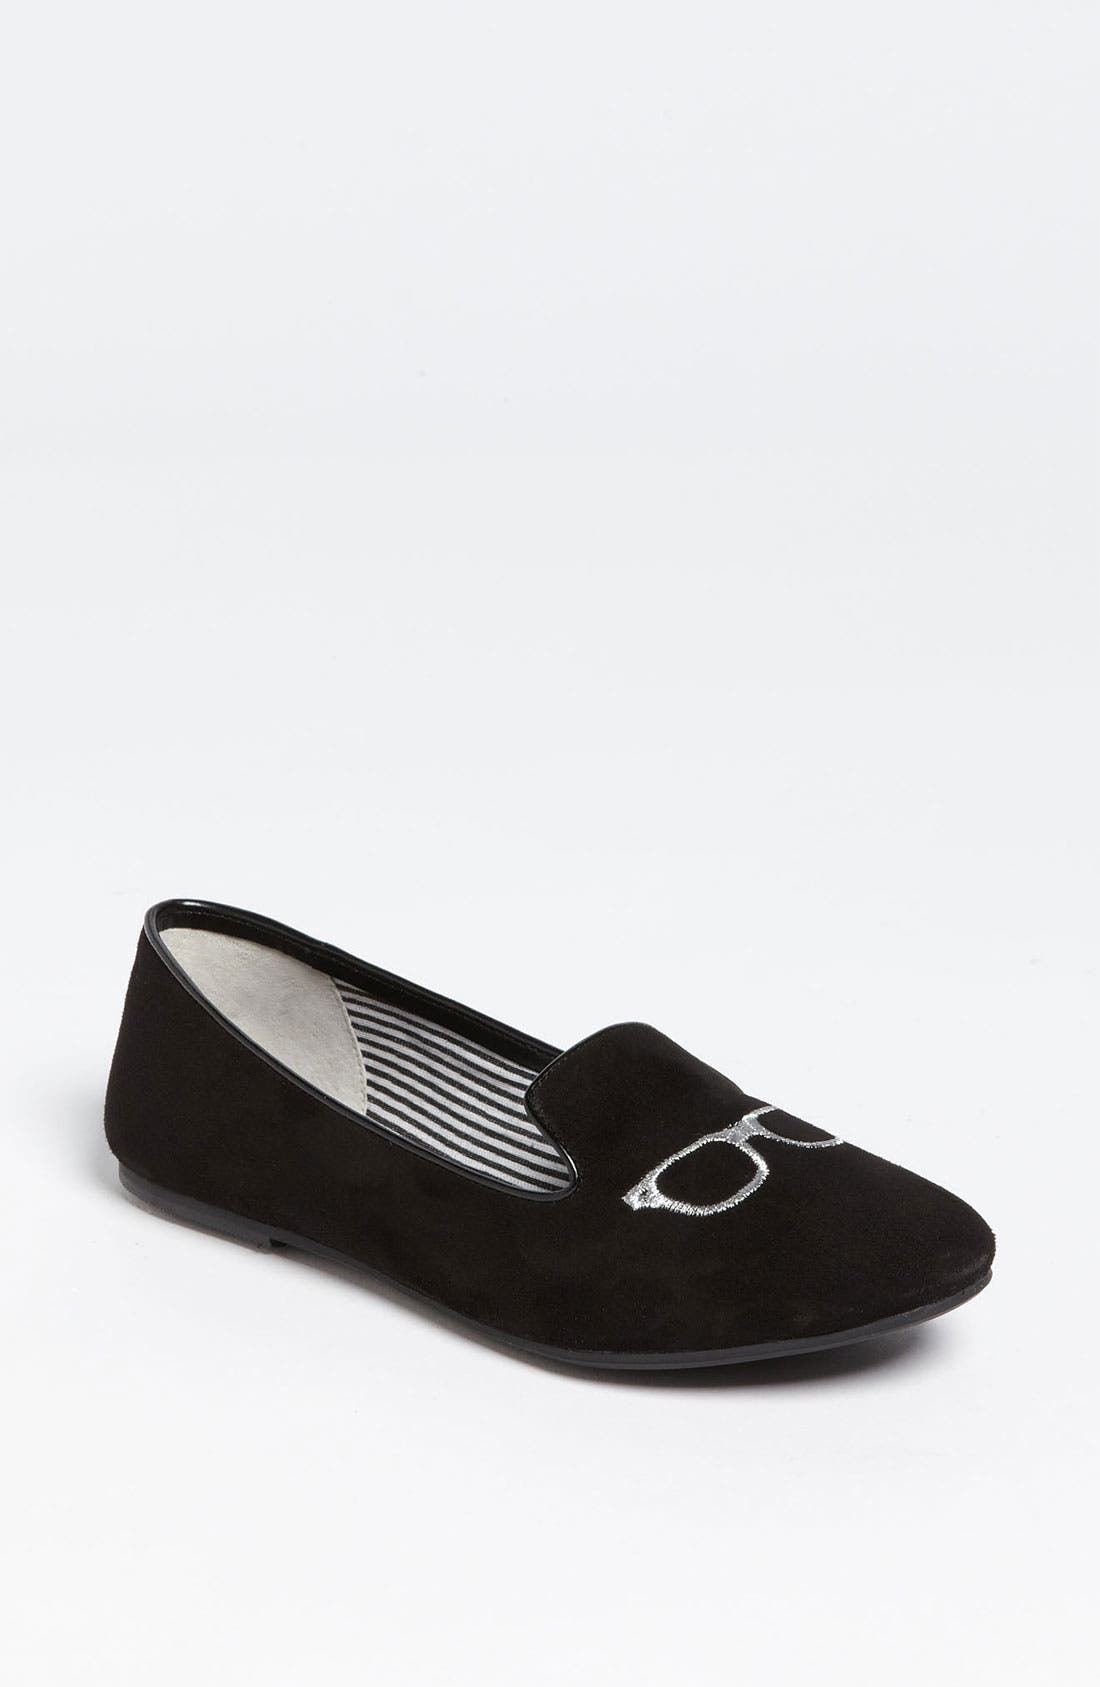 Main Image - BP. 'Milten' Loafer